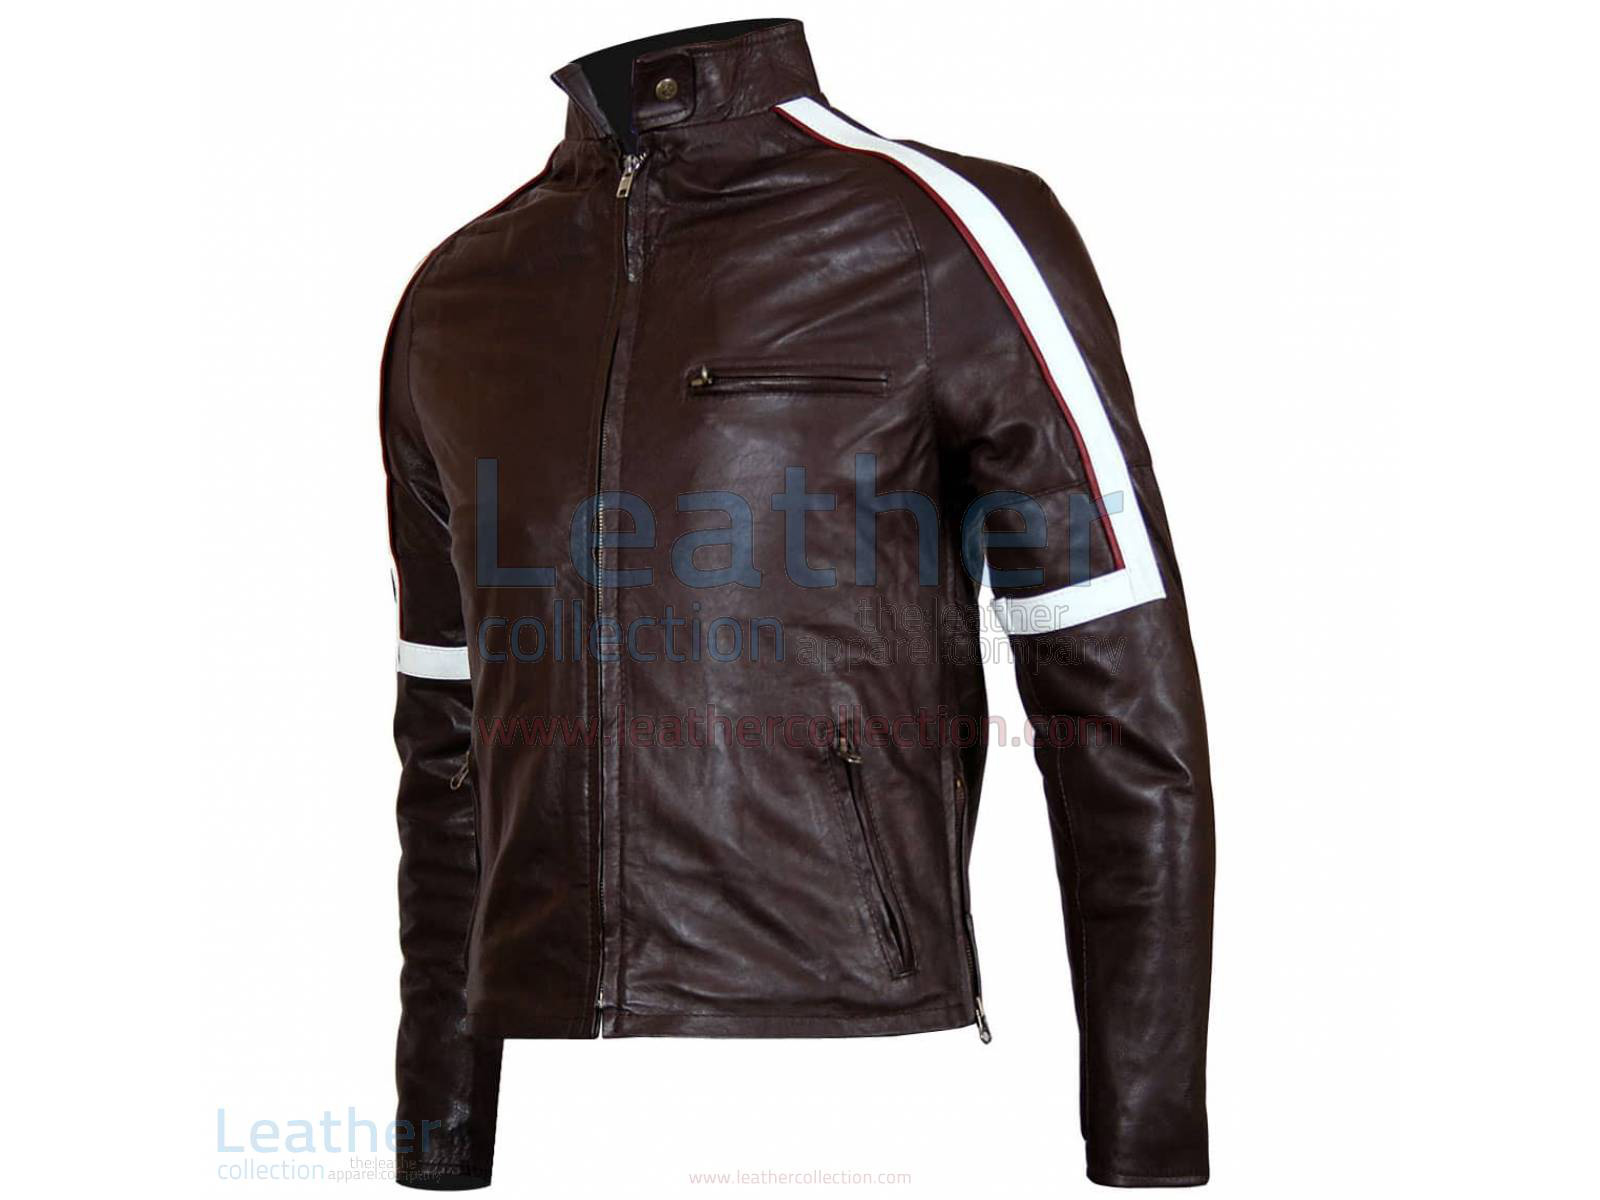 TOM CRUISE WAR OF THE WORLD LEATHER JACKET